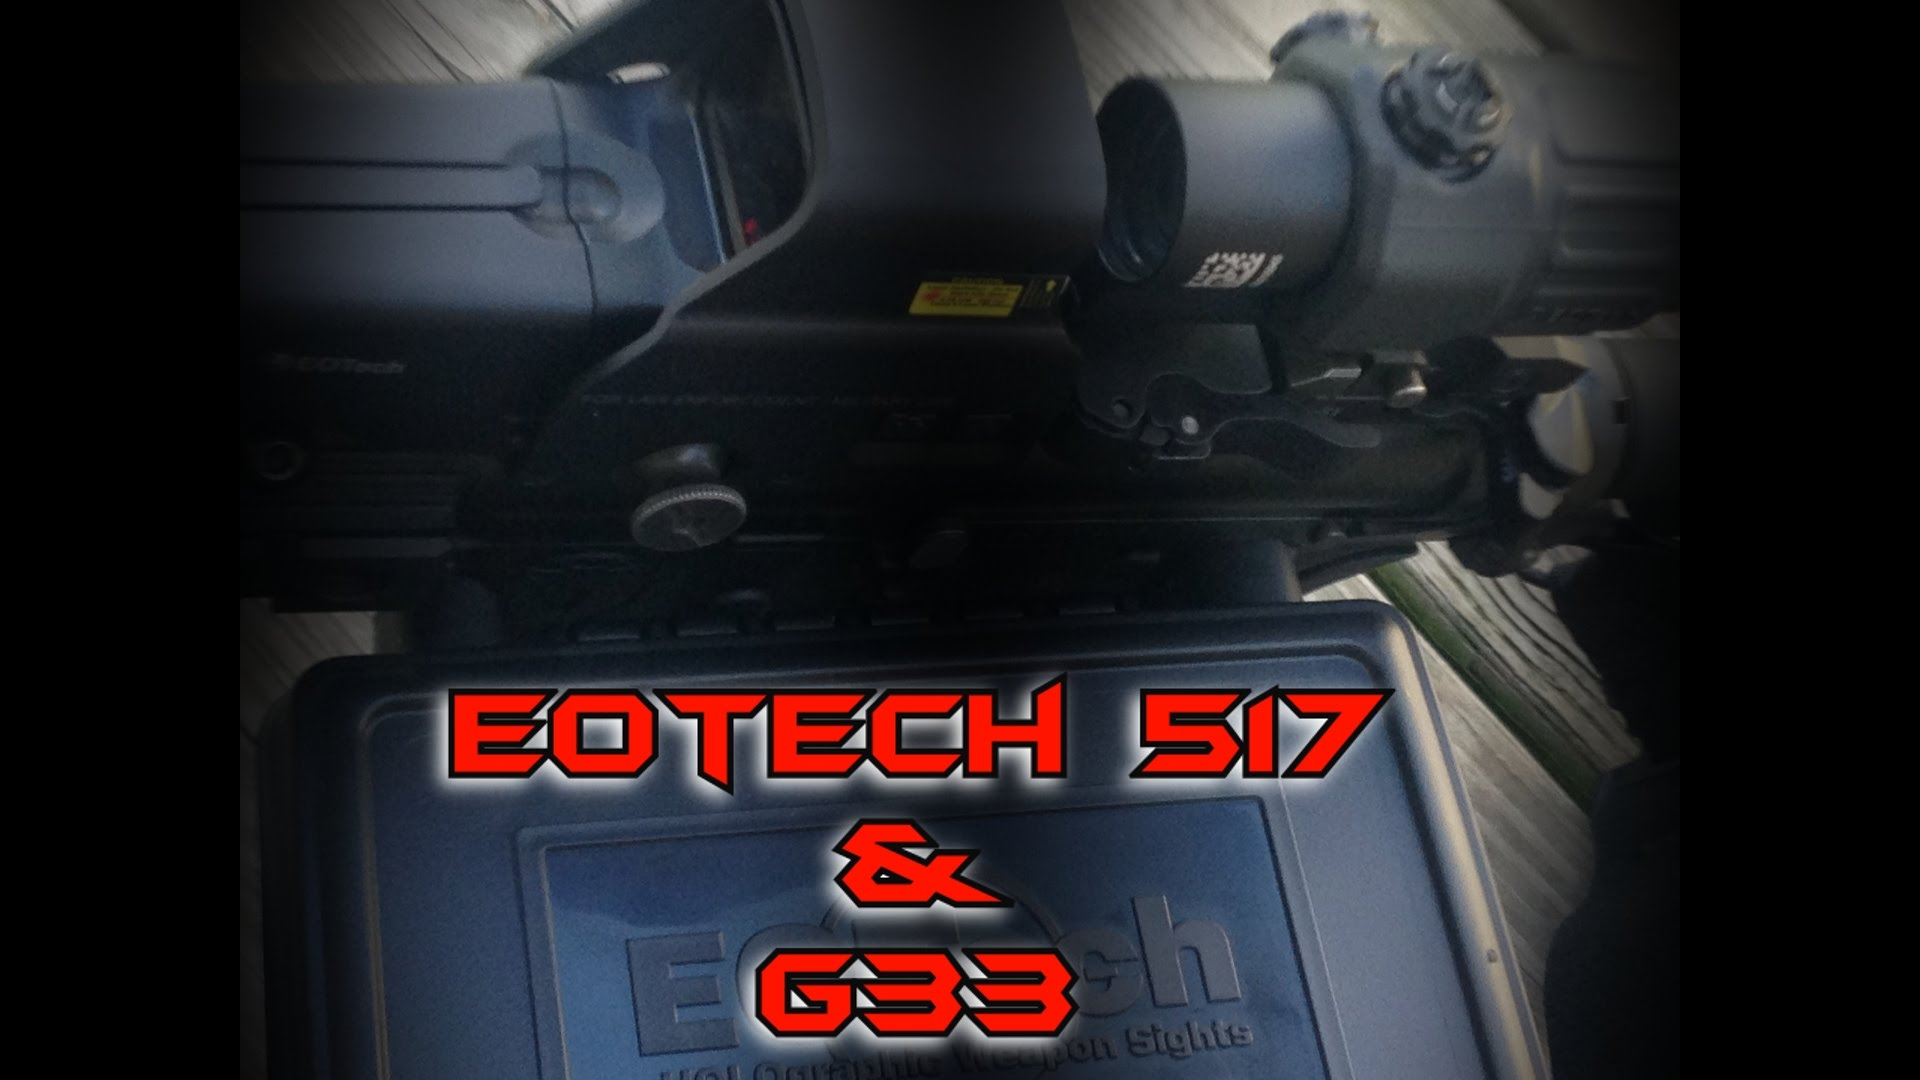 EOTech 517 Holographic Weapon Sight and G33 Magnifier